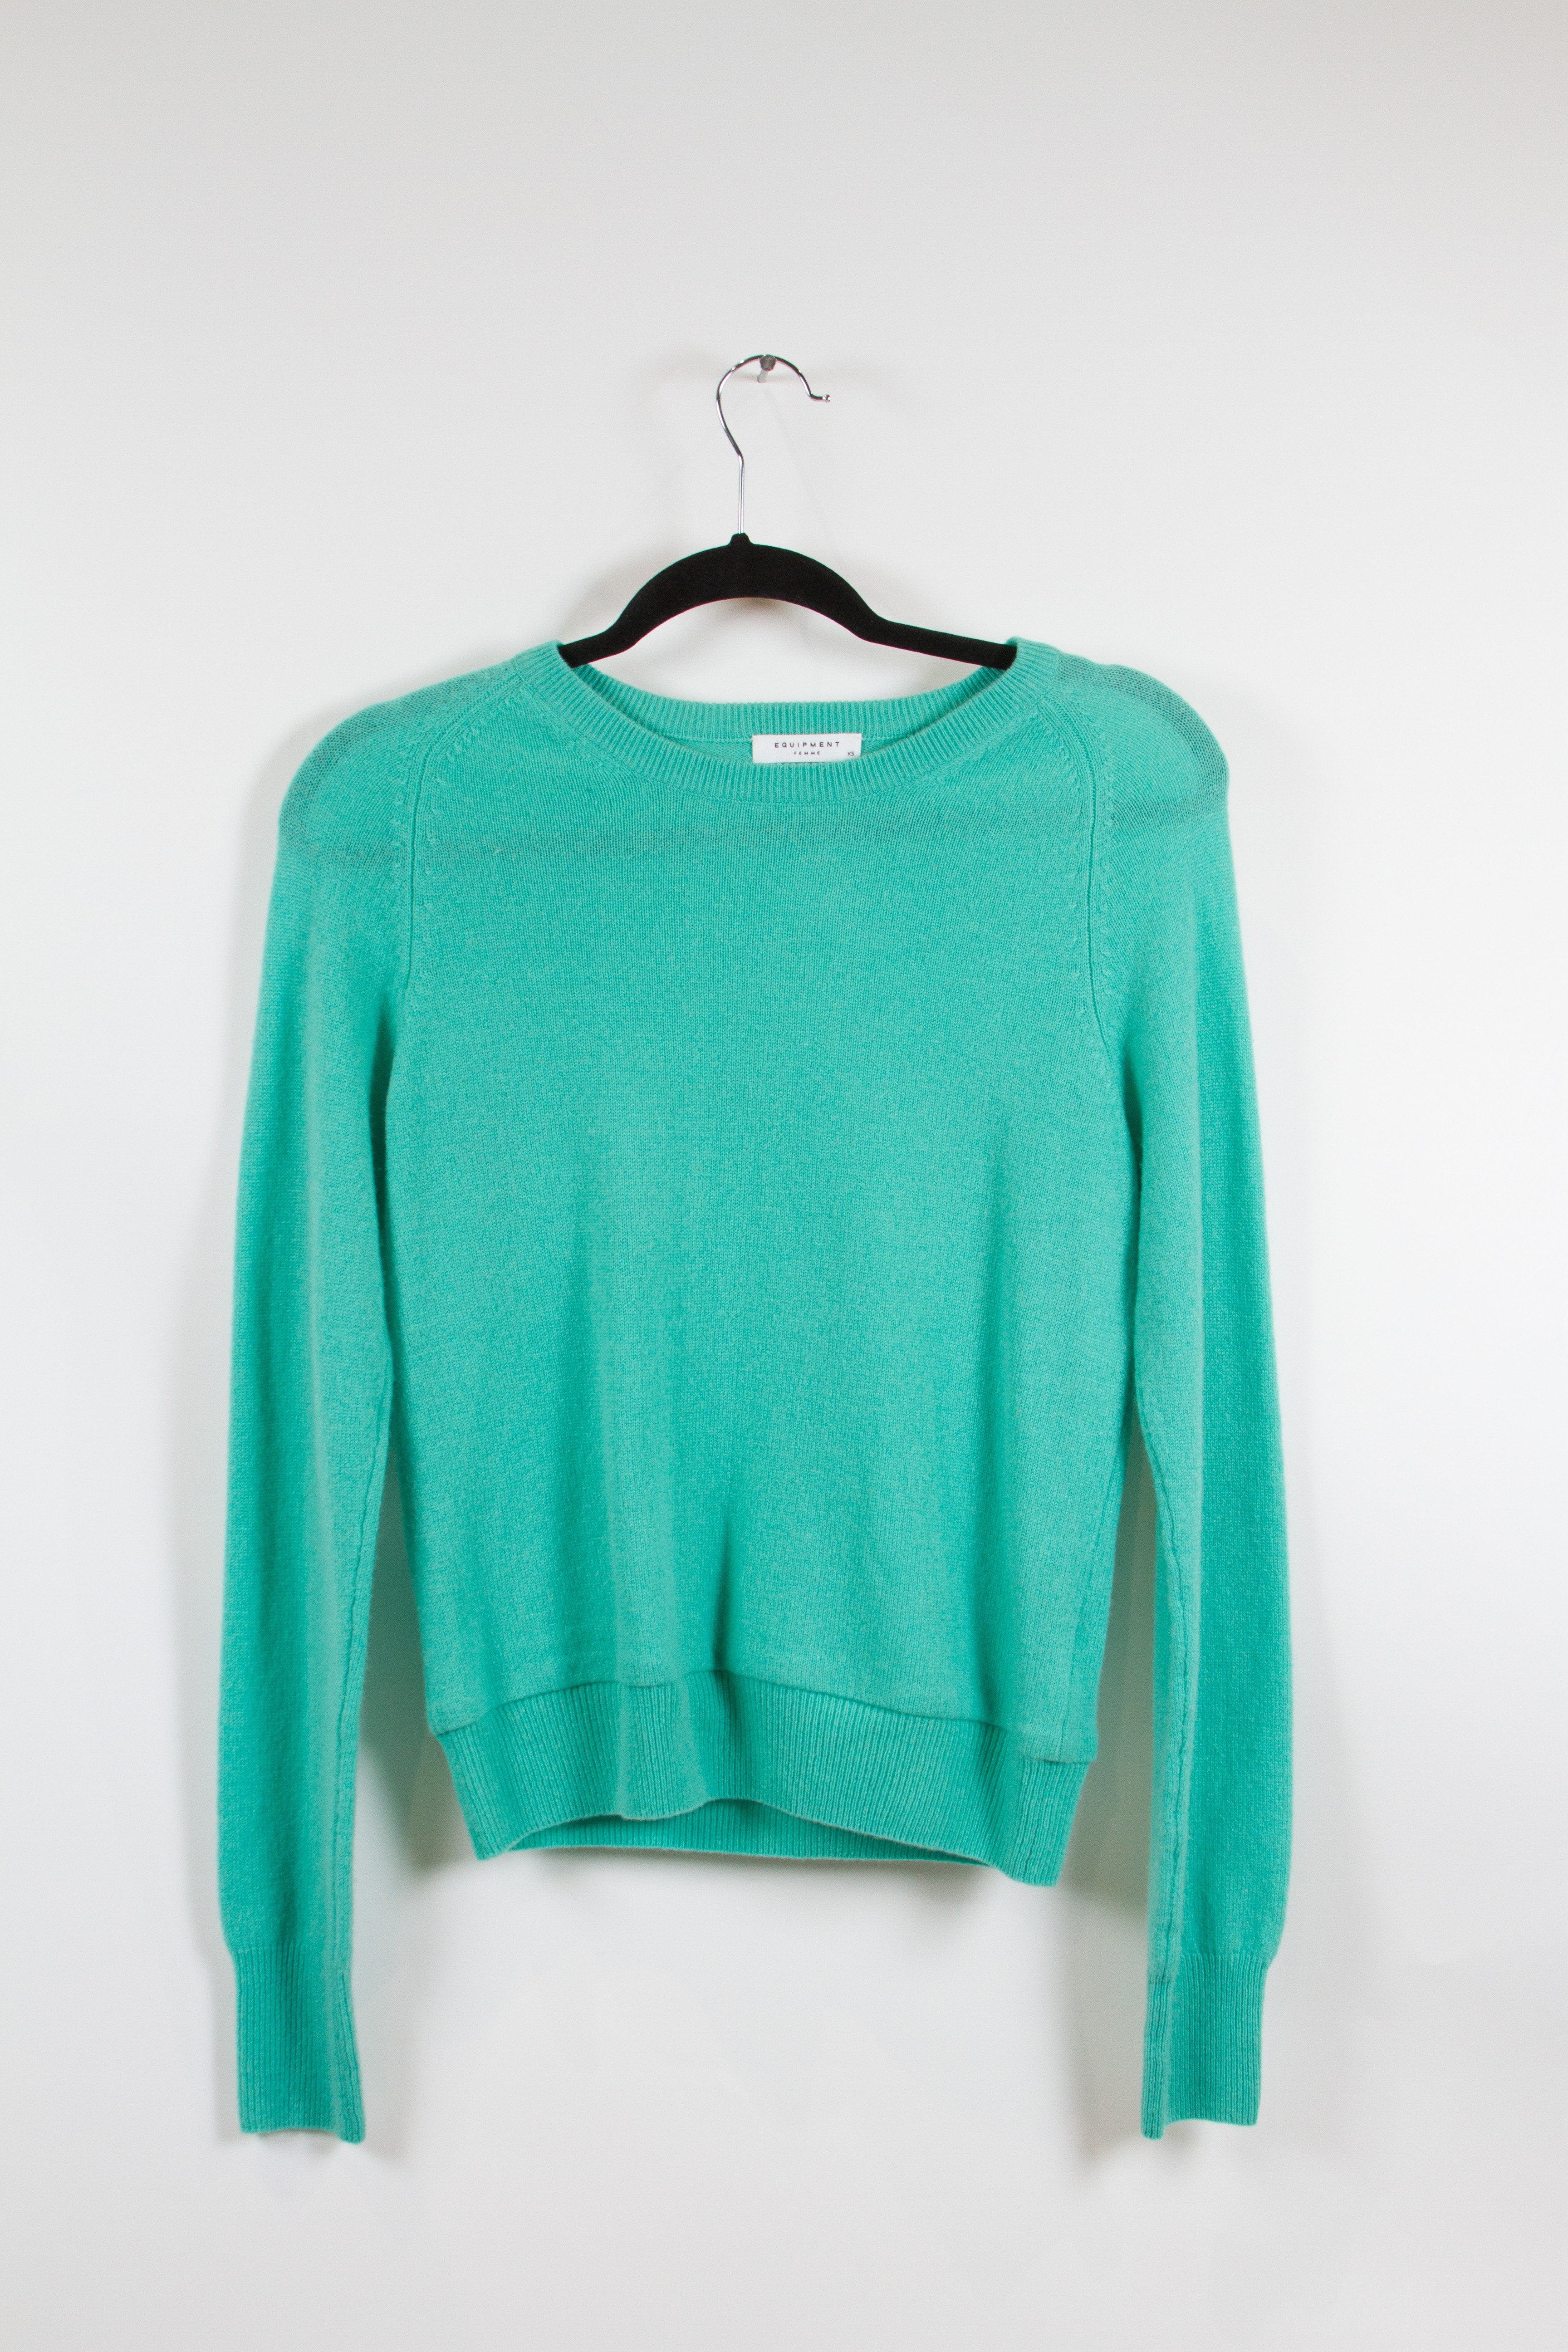 Equipment Femme Turquoise Sweater XS